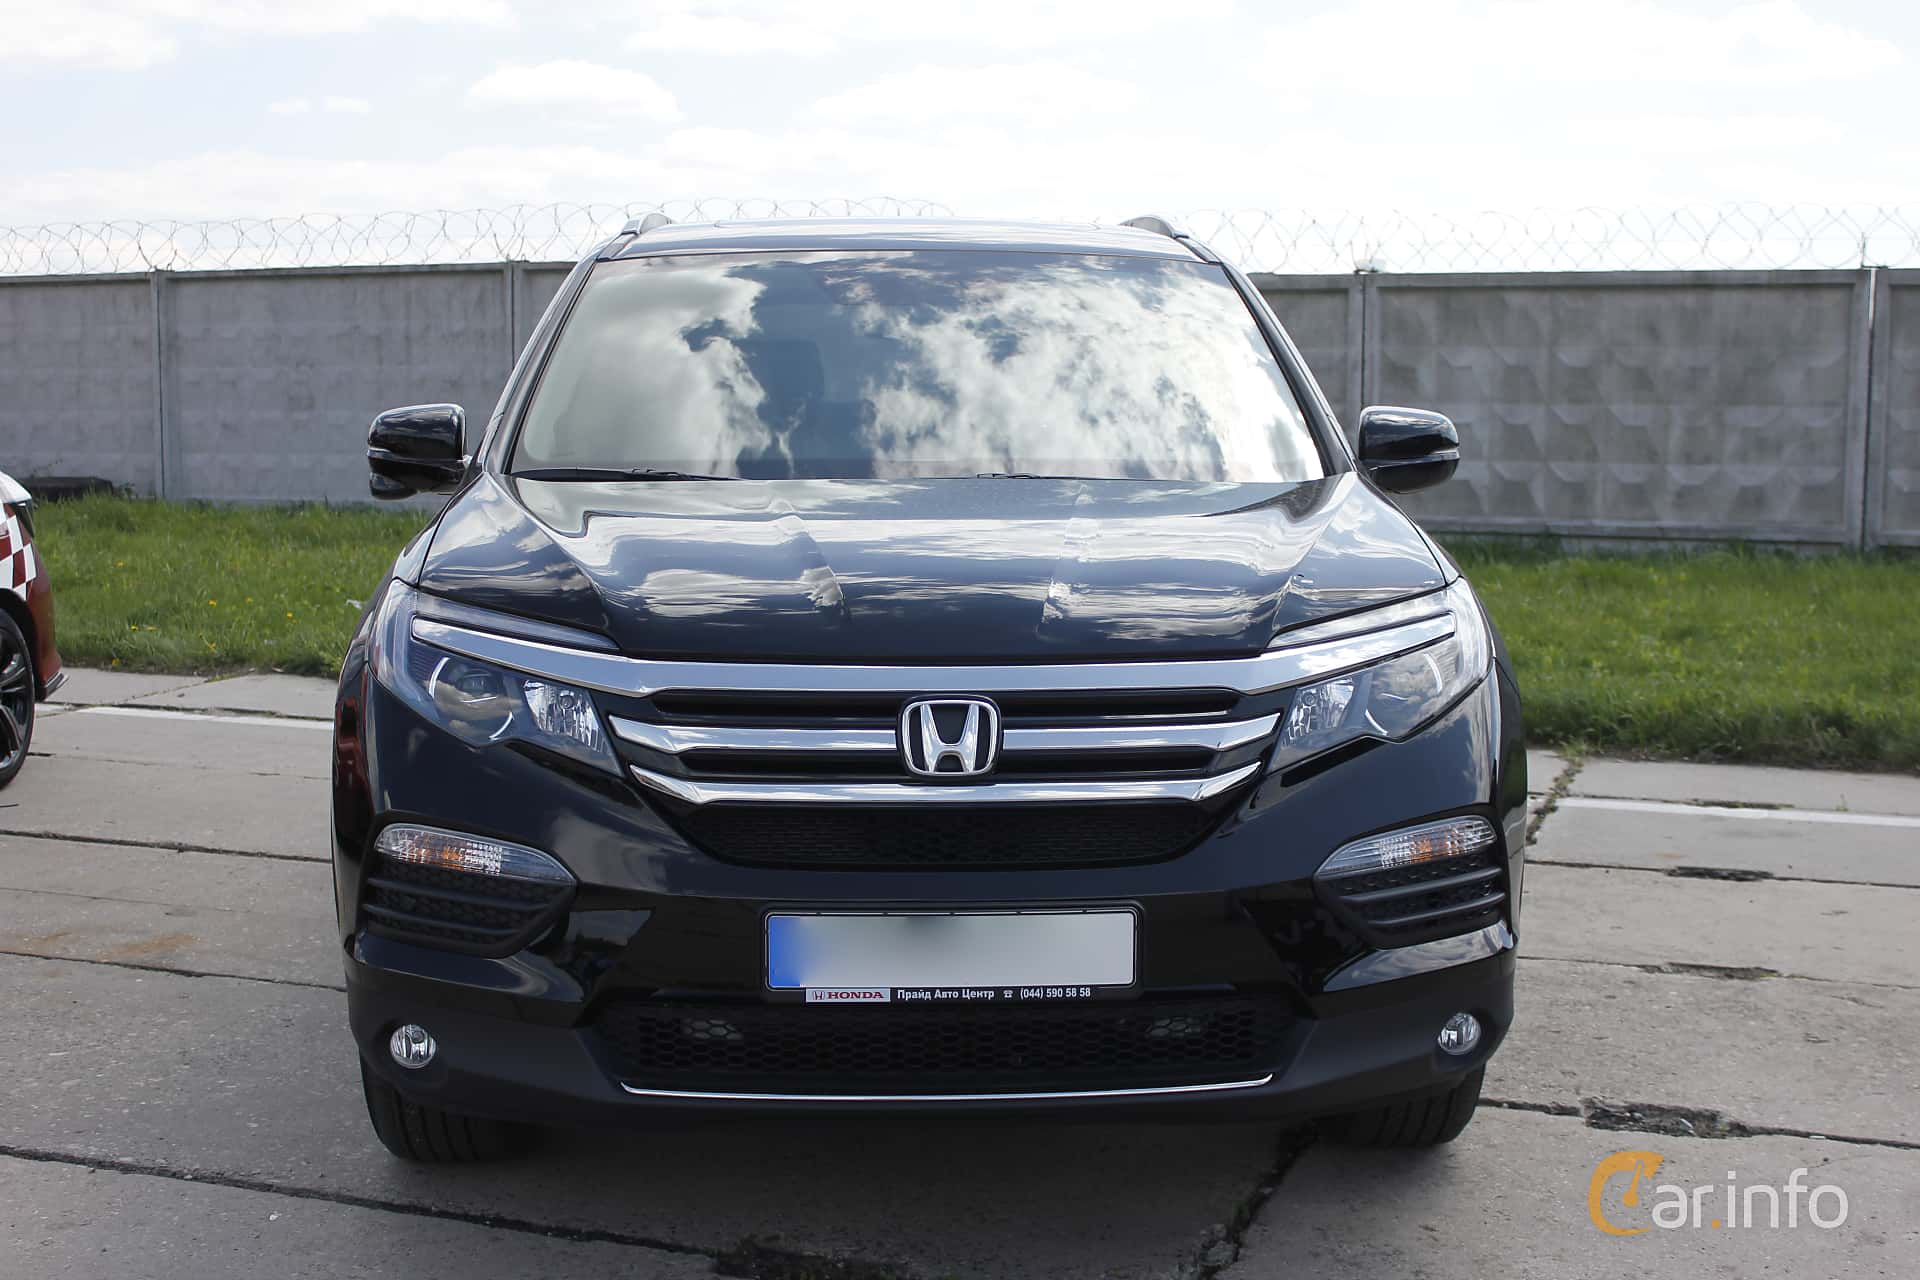 Honda Pilot 3.5 V6 Automatisk, 280hk, 2017 at Old Car Land no.1 2018